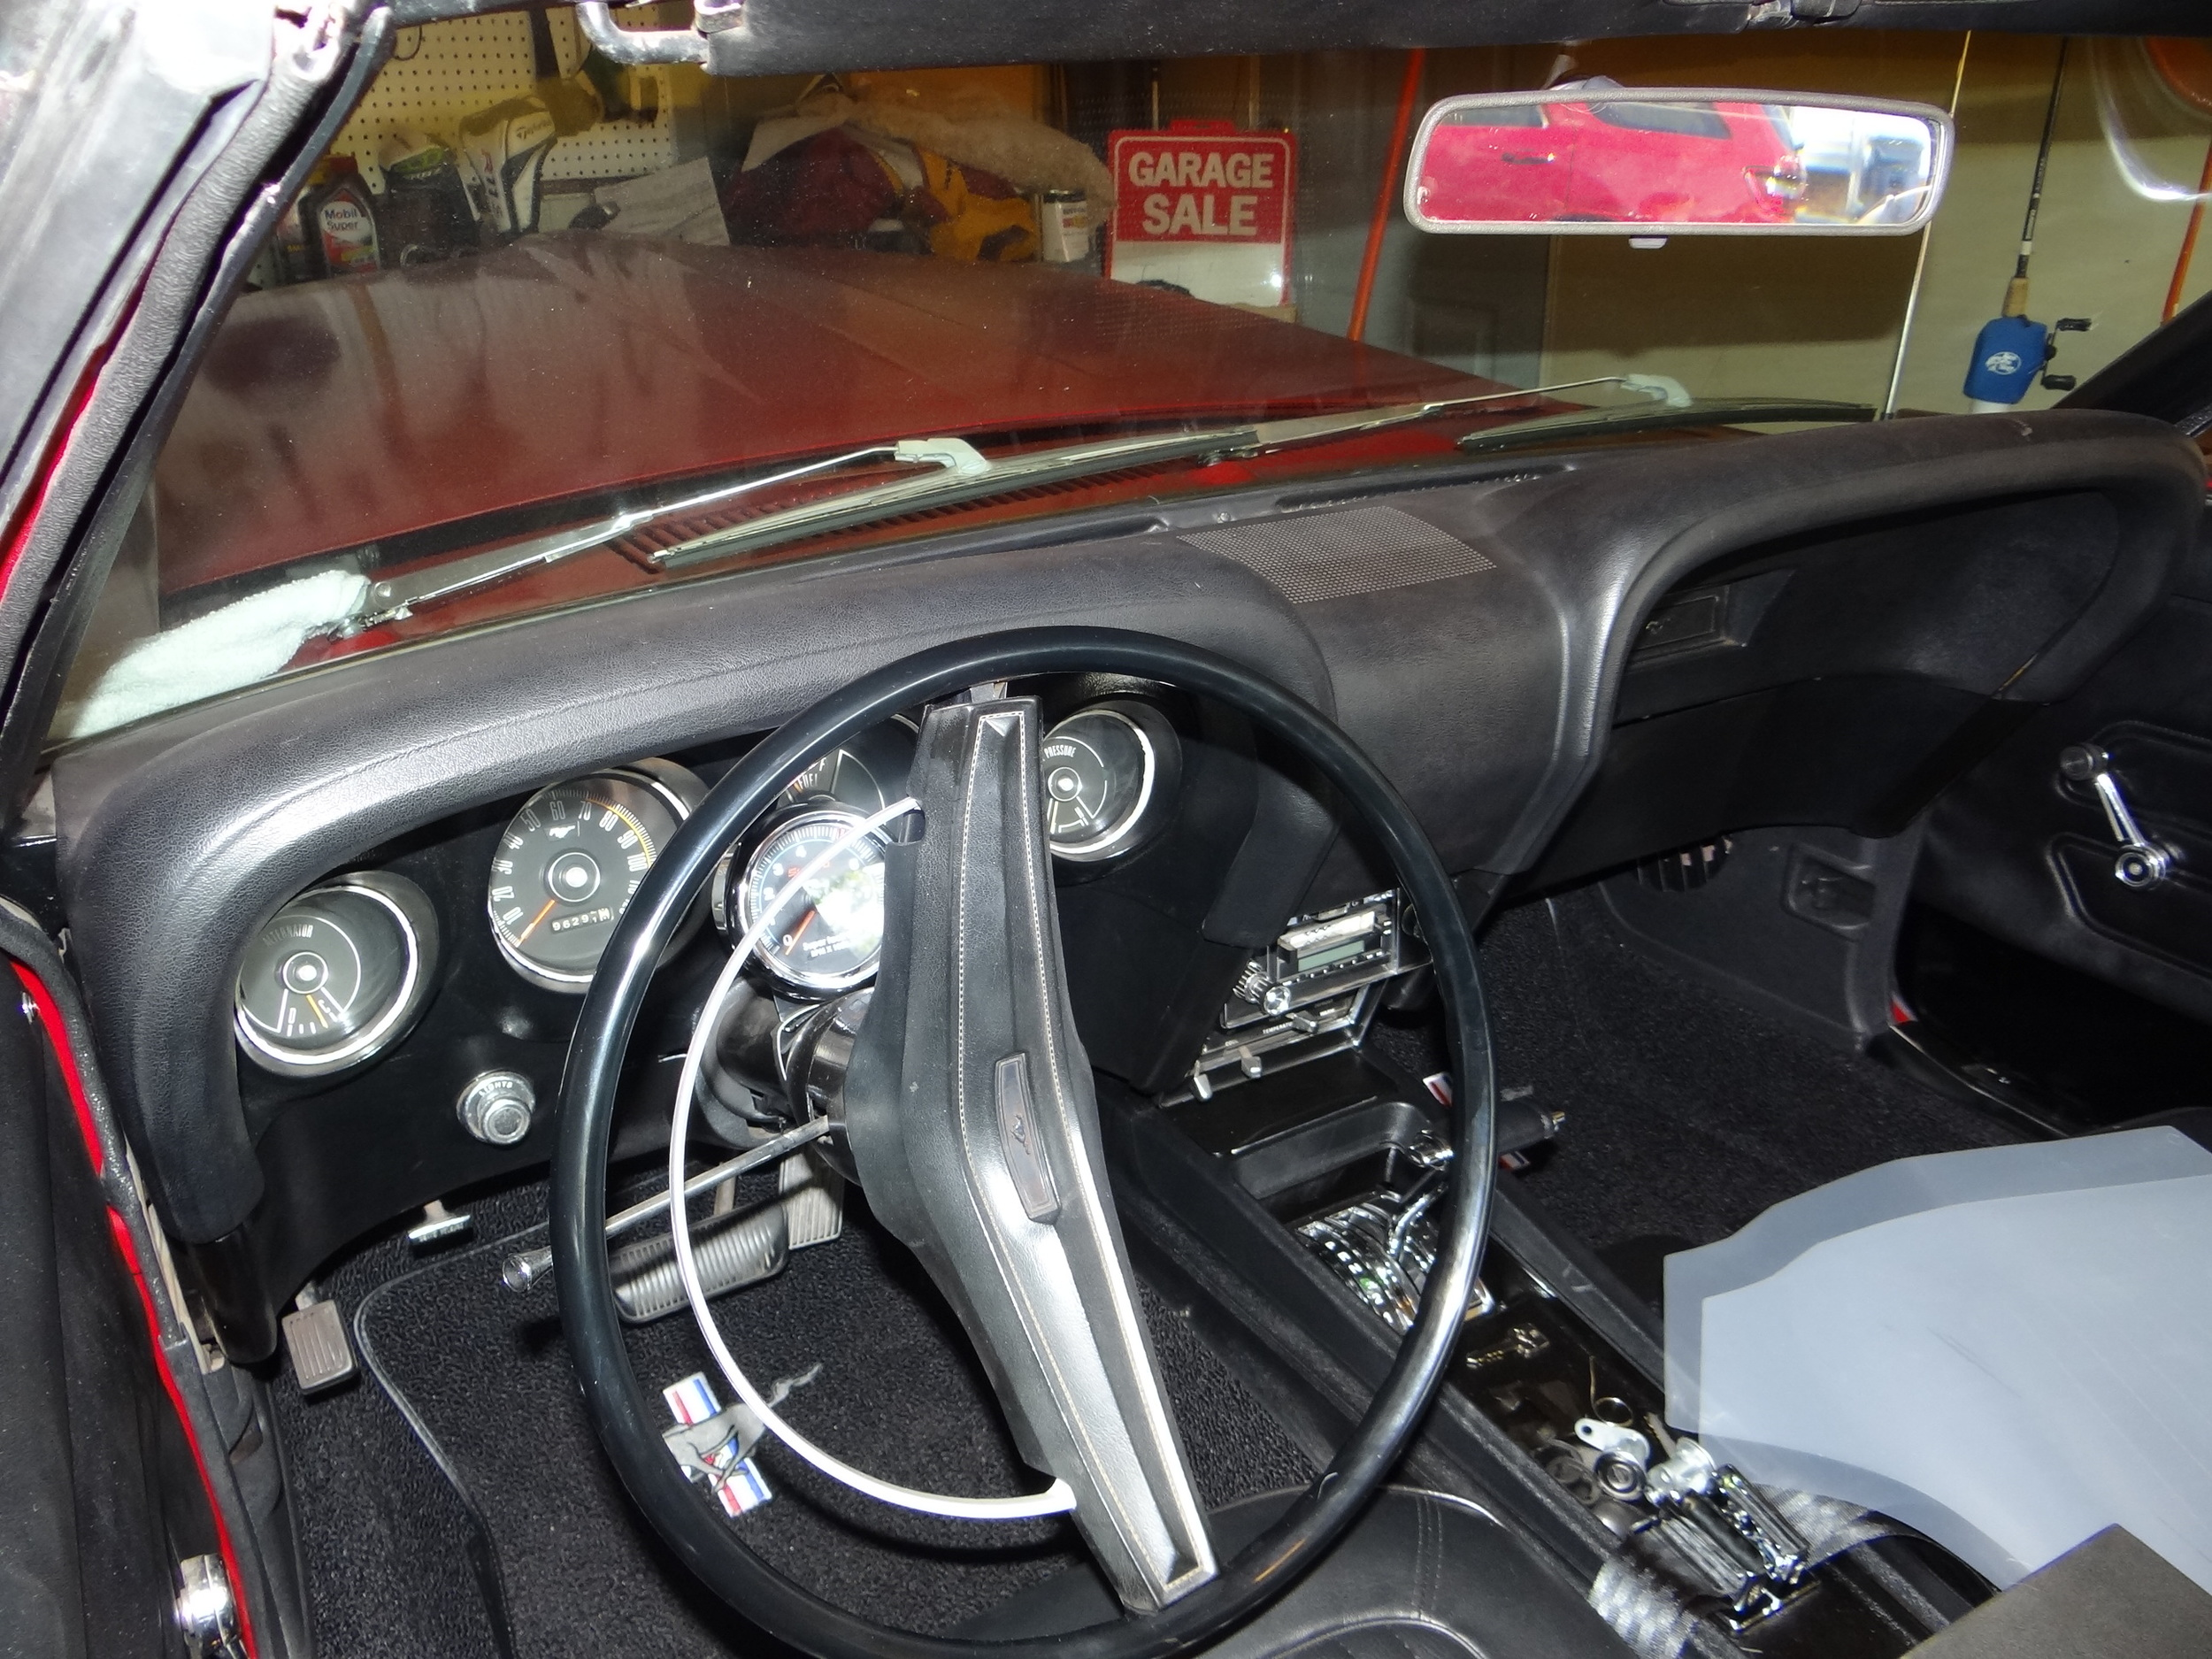 The '69 Mustang's dashboard